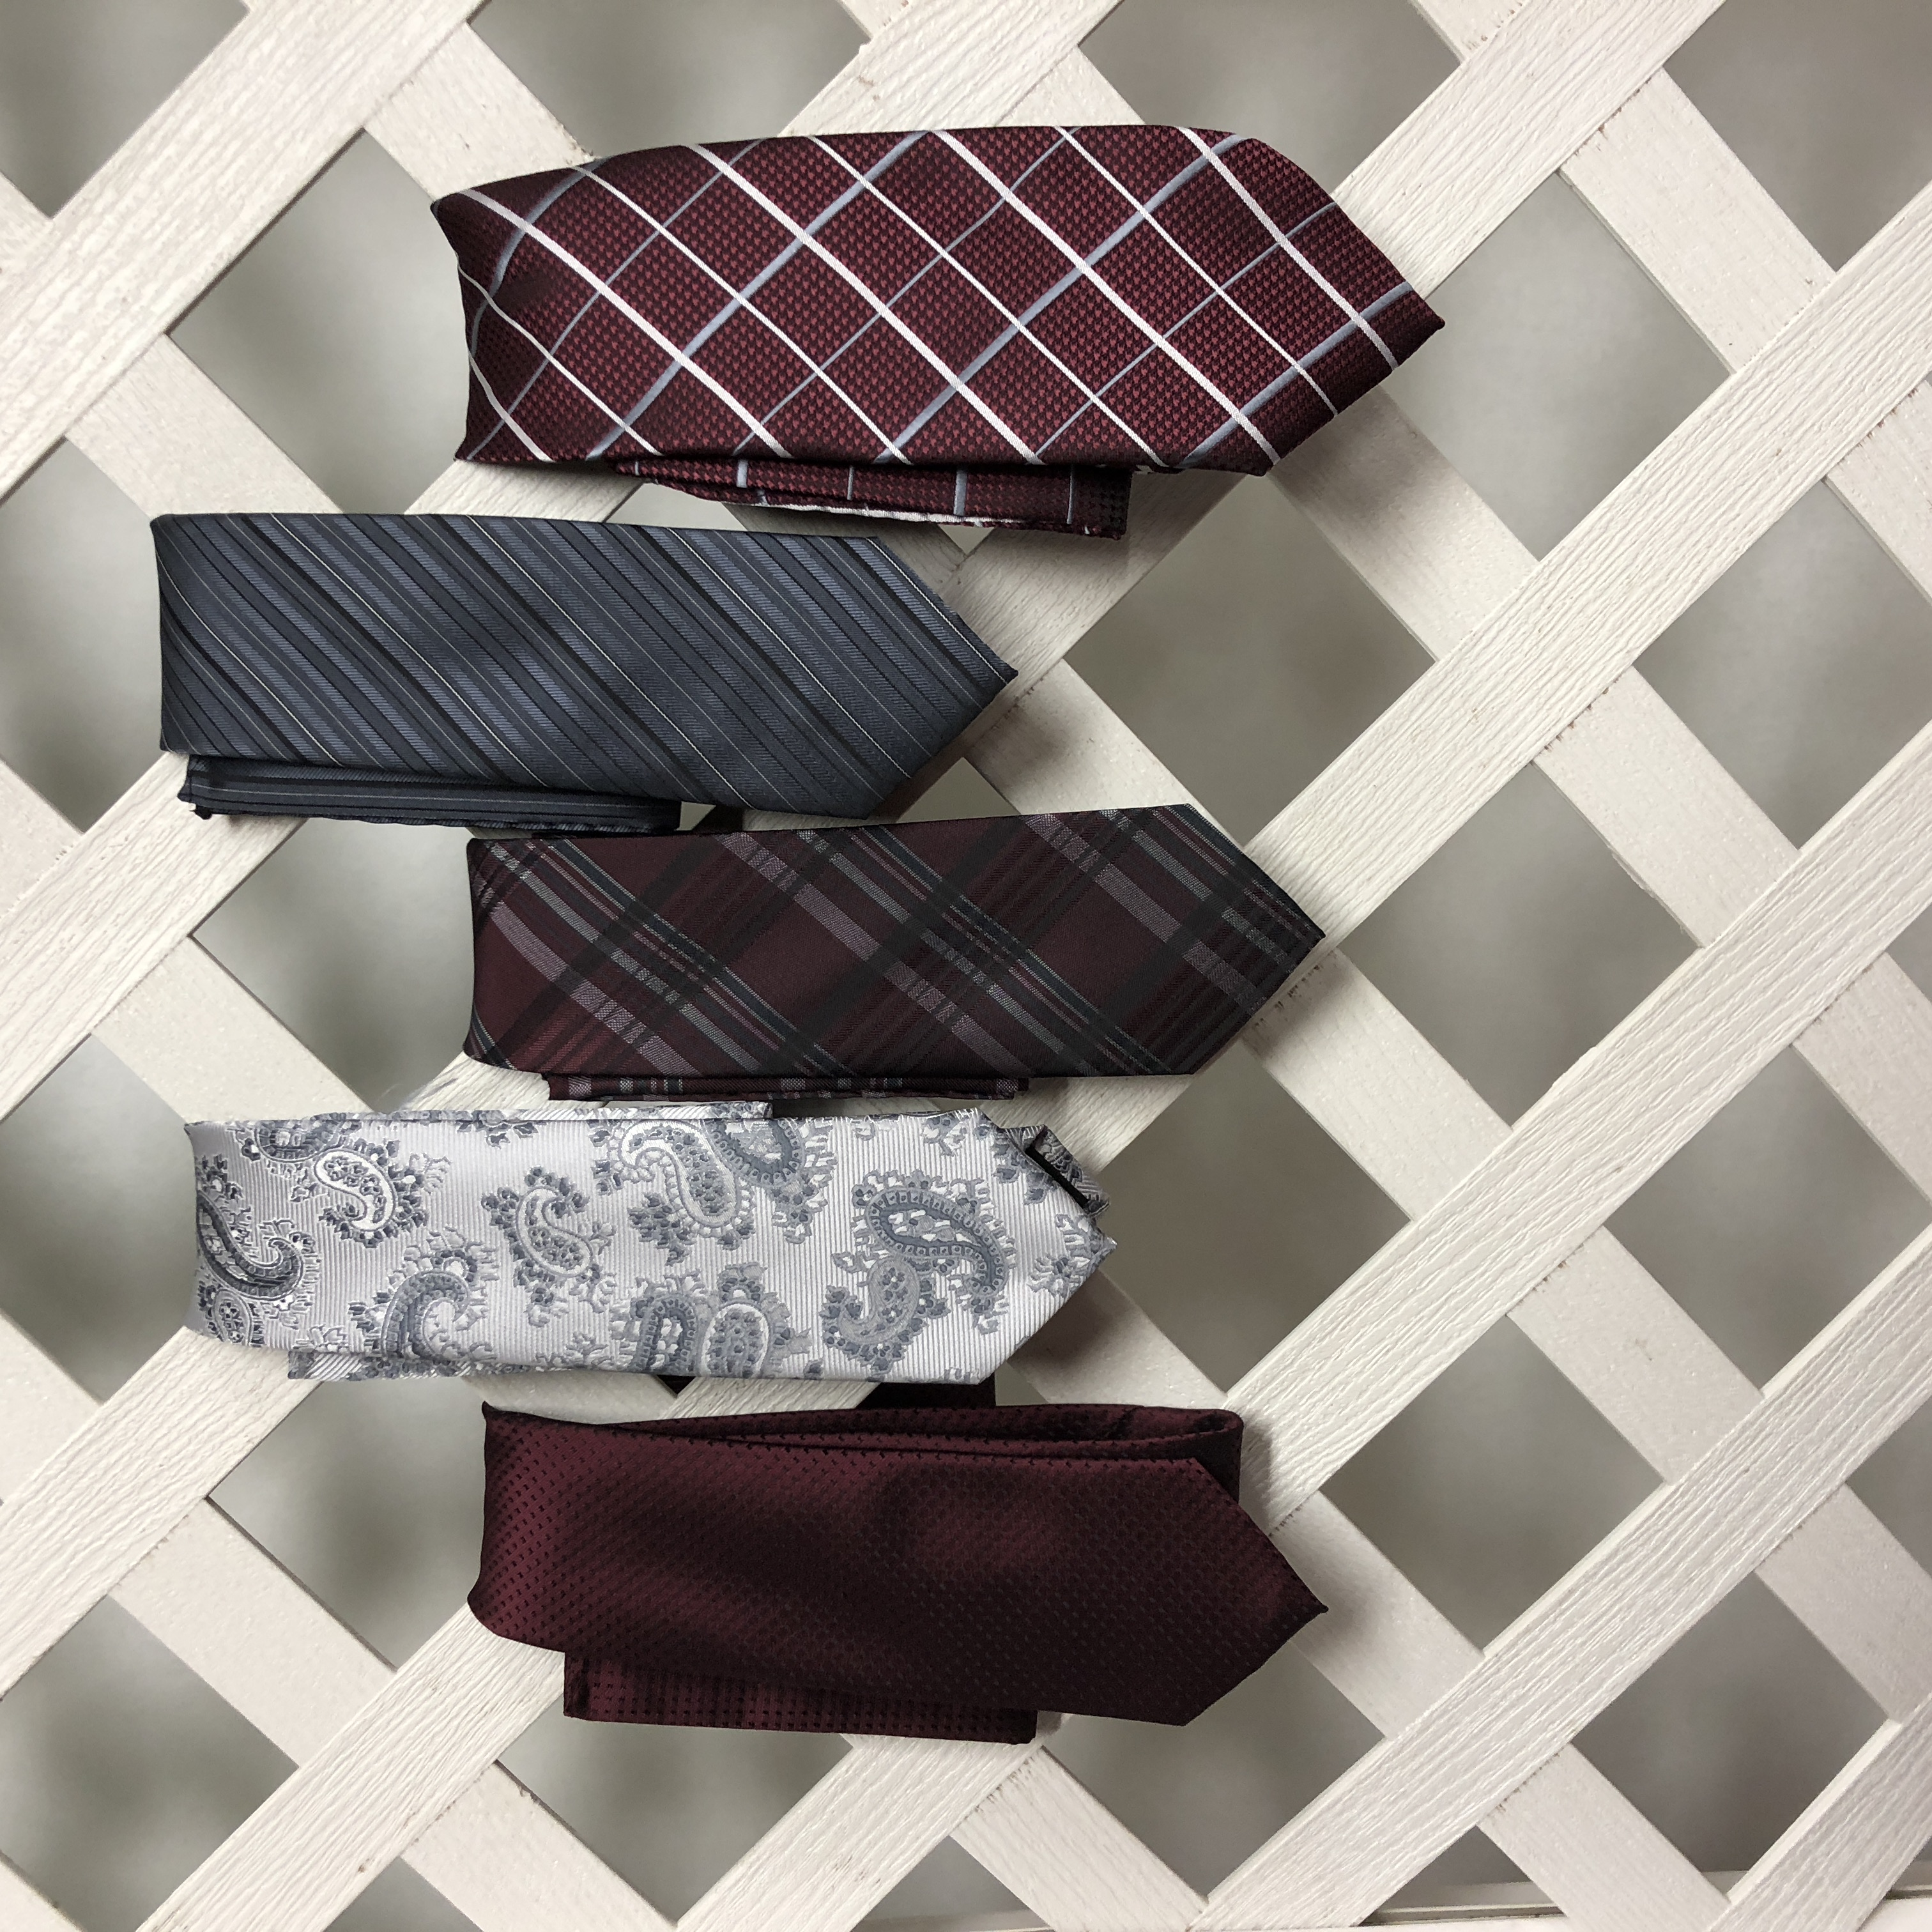 Men's Ties in many colors